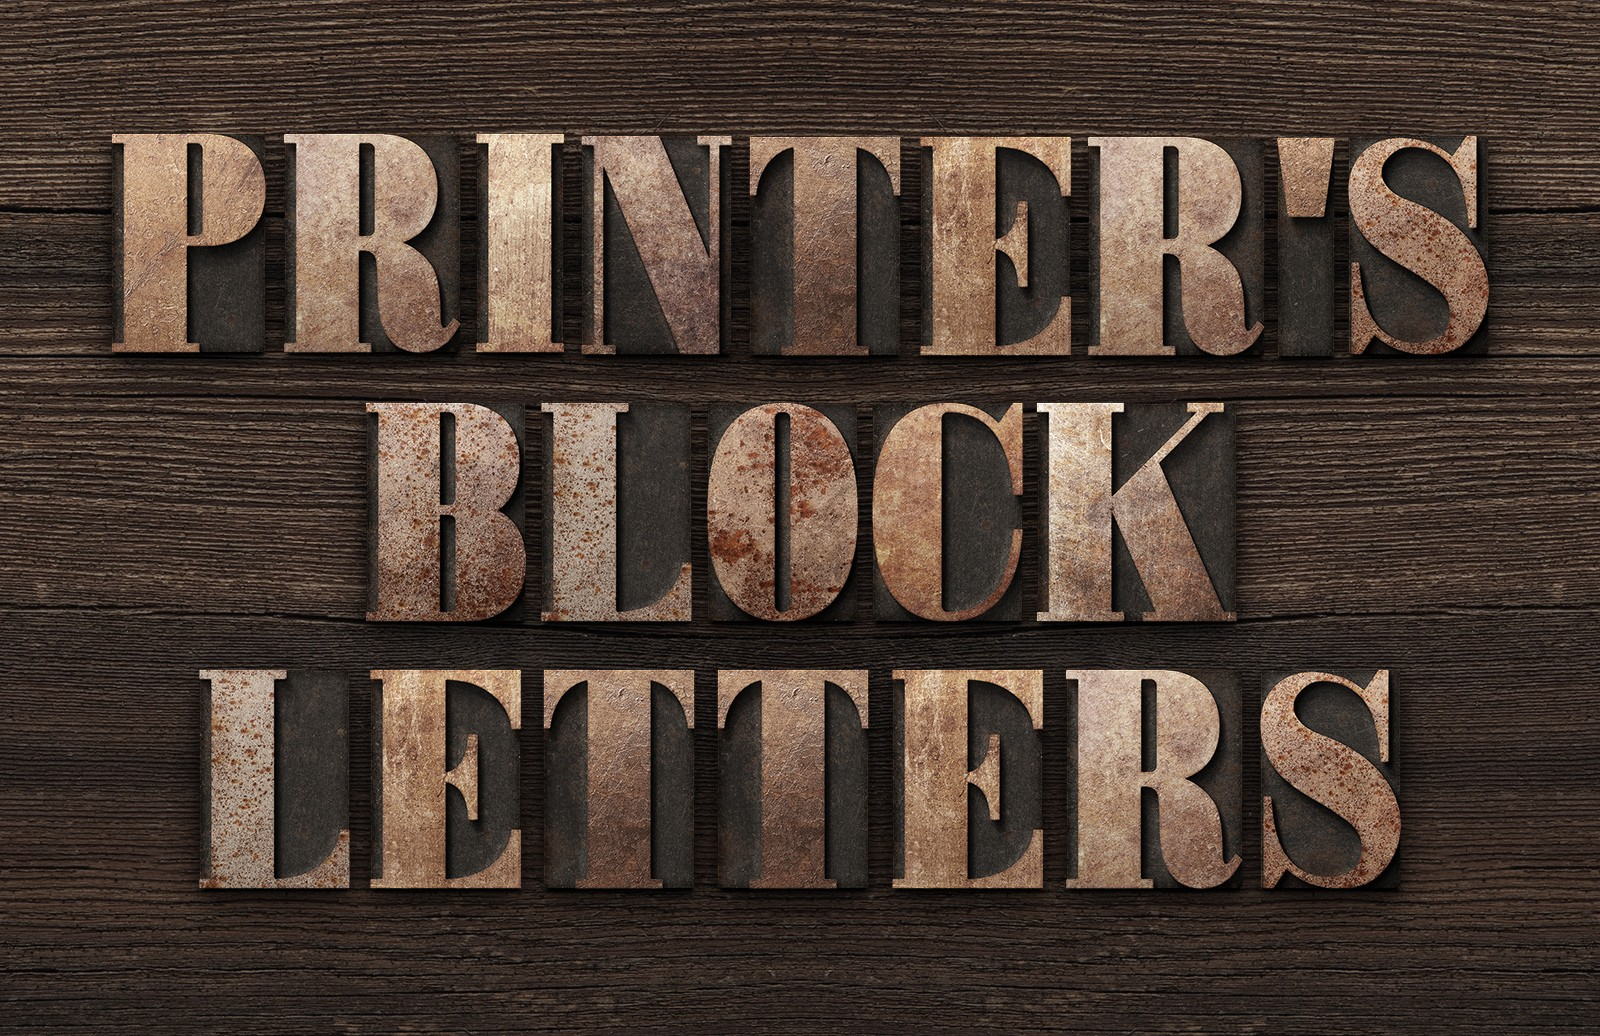 Printer's Letterpress Block Letters